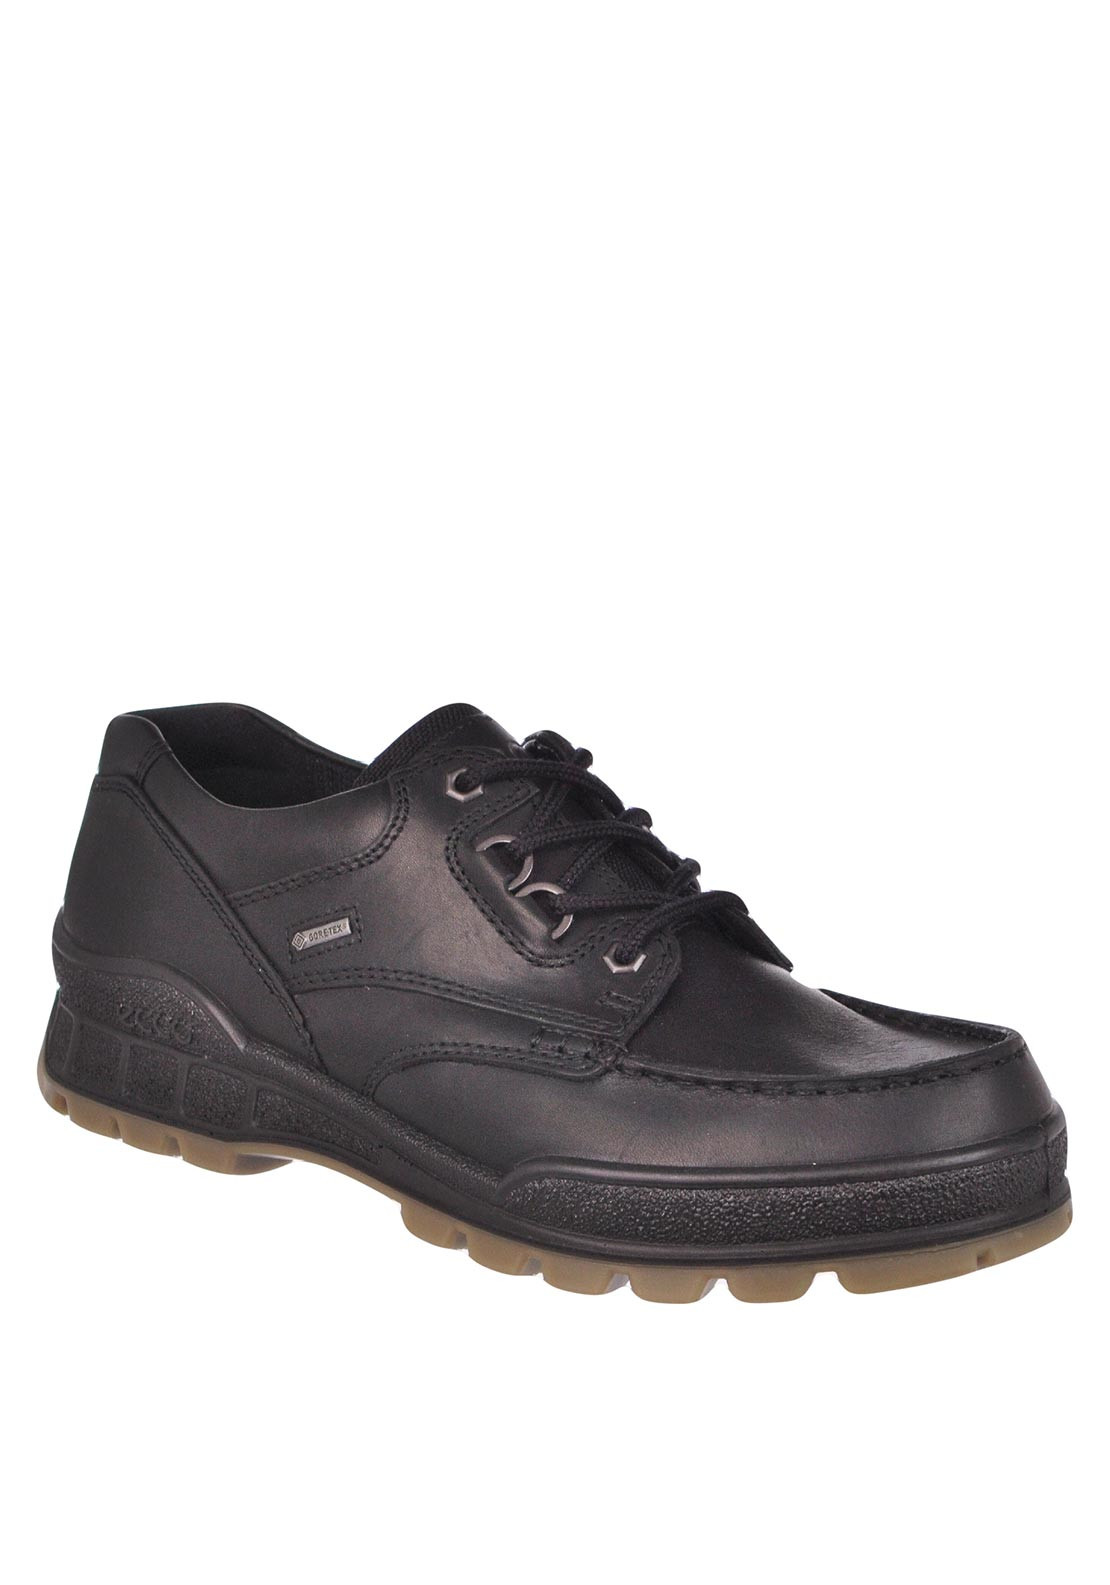 Ecco Mens Track 2 Leather Lace-Up Shoe, Black